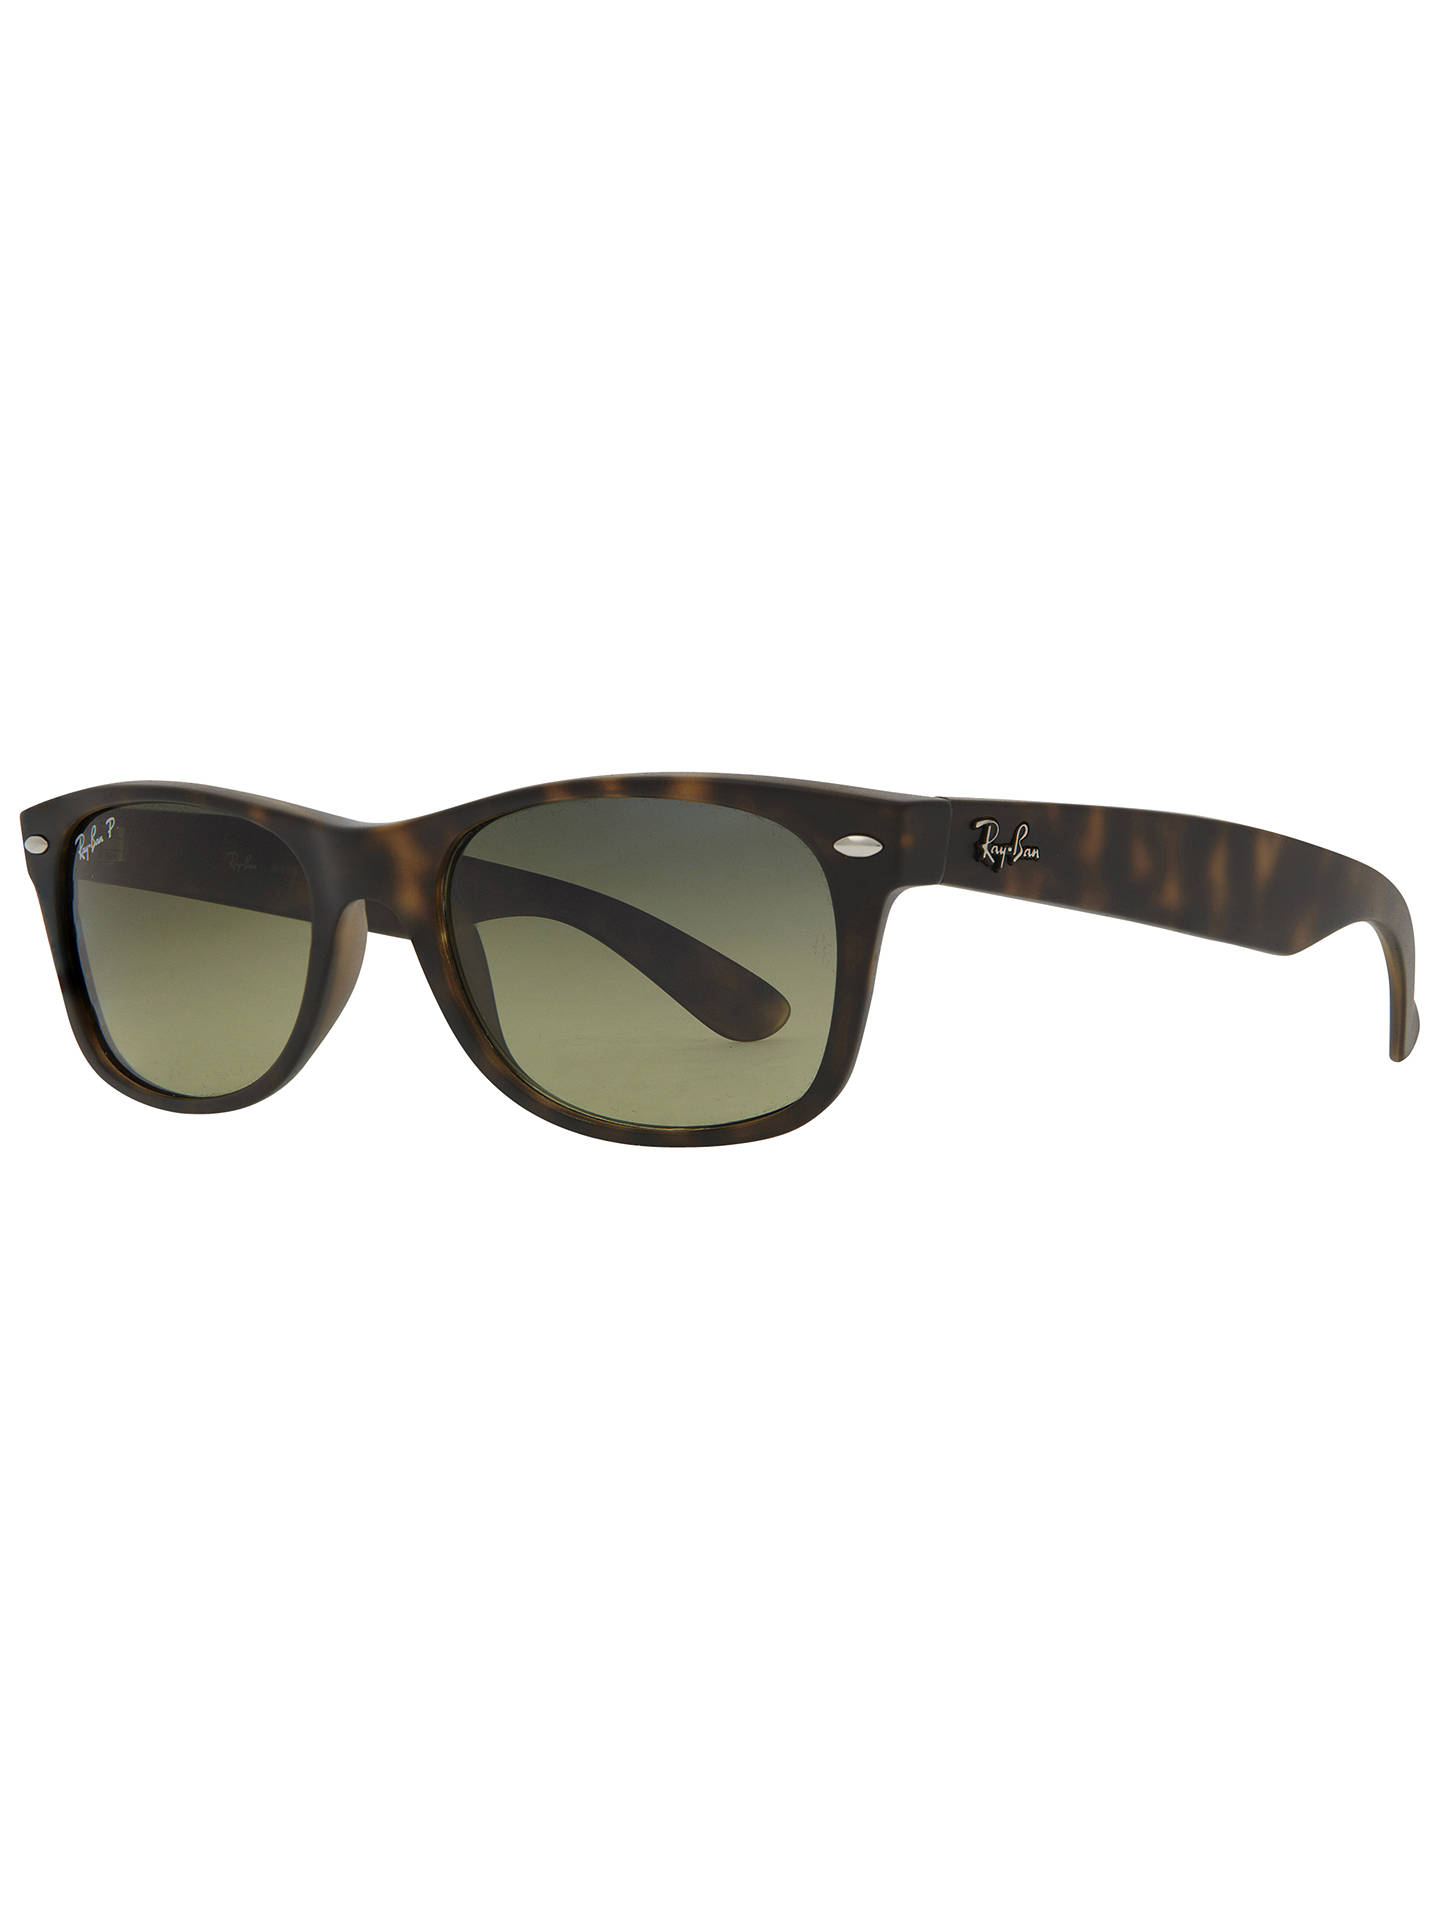 b31a1729cc Ray-Ban RB2132 Men s New Wayfarer Polarised Sunglasses at John Lewis ...